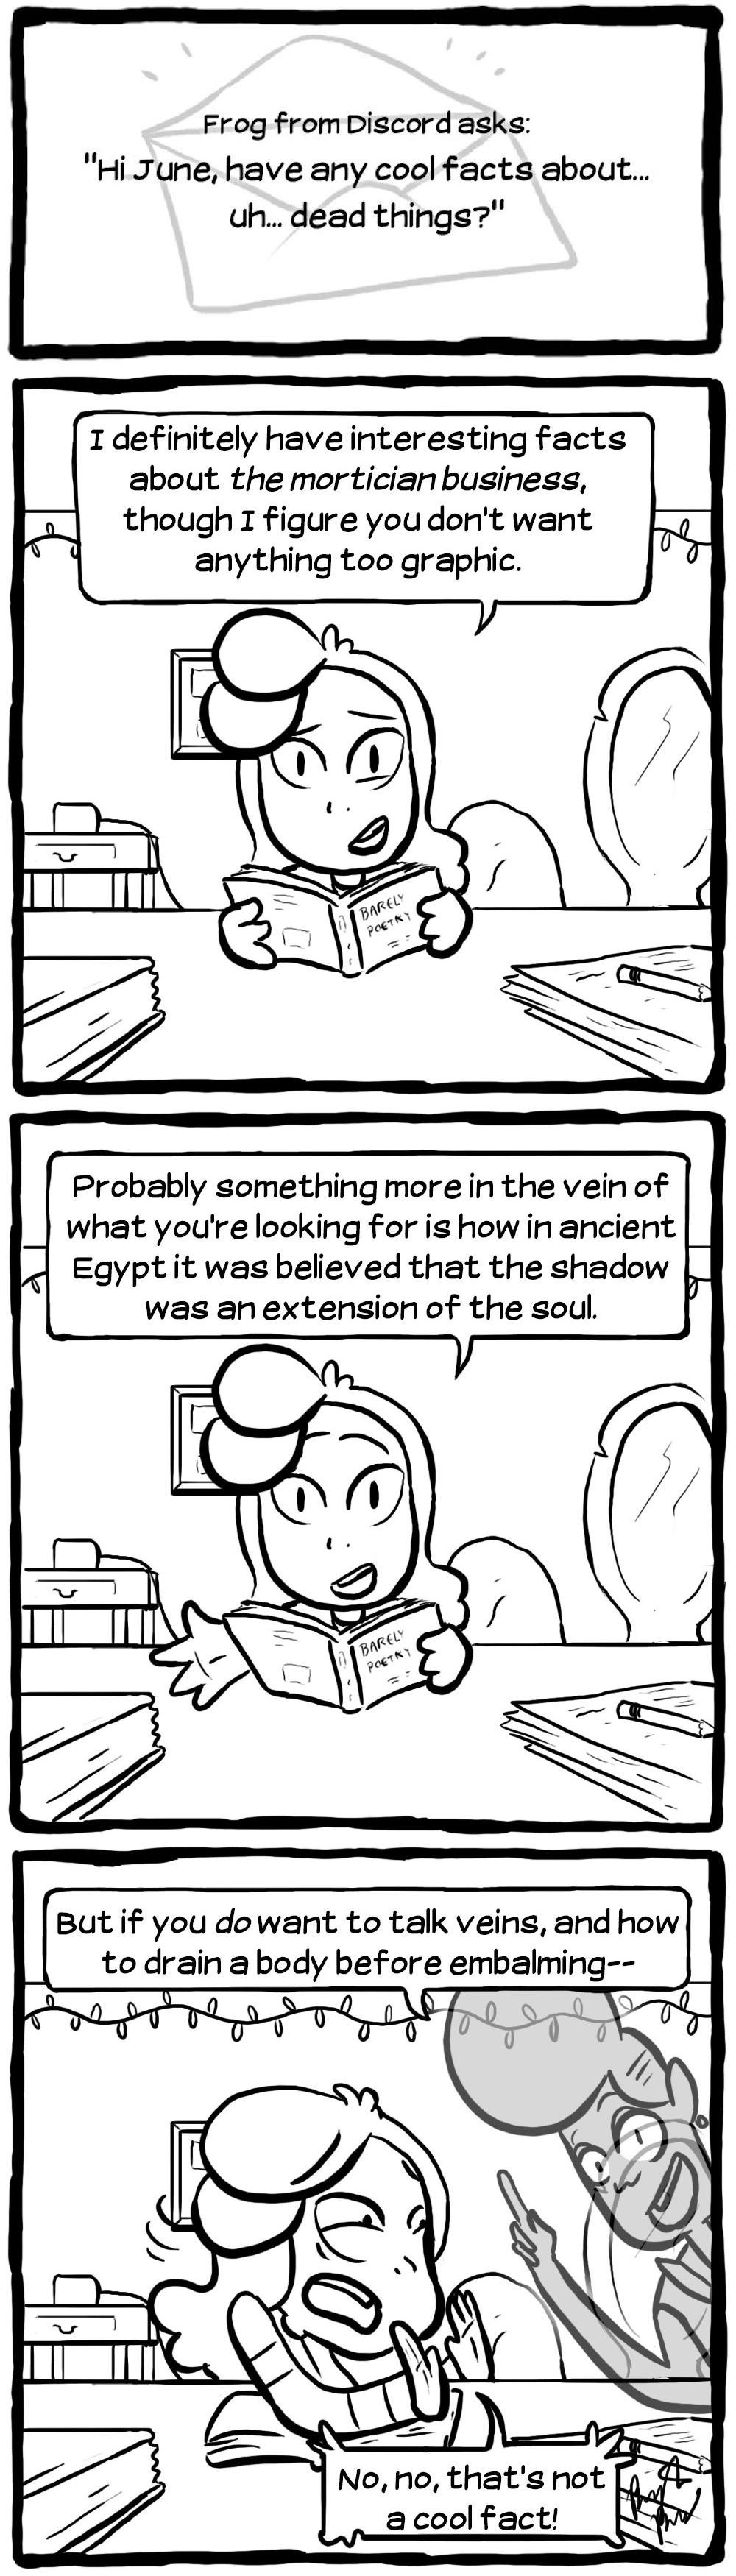 "[Frog from Discord asks: ""Hi June, have any cool facts about... uh... dead things?""] [June: ""I definitely have interesting facts about _the mortician business_, though I figure you don't want anything too graphic.""] [June: ""Probably something more in the vein of what you're looking for is how in ancient Egypt it was believed that the shadow was an extension of the soul.""] [Carmen: ""But if you _do_ want to talk veins, and how to drain a body before embalming--"" June: ""No, no, that's not a cool fact!""]"